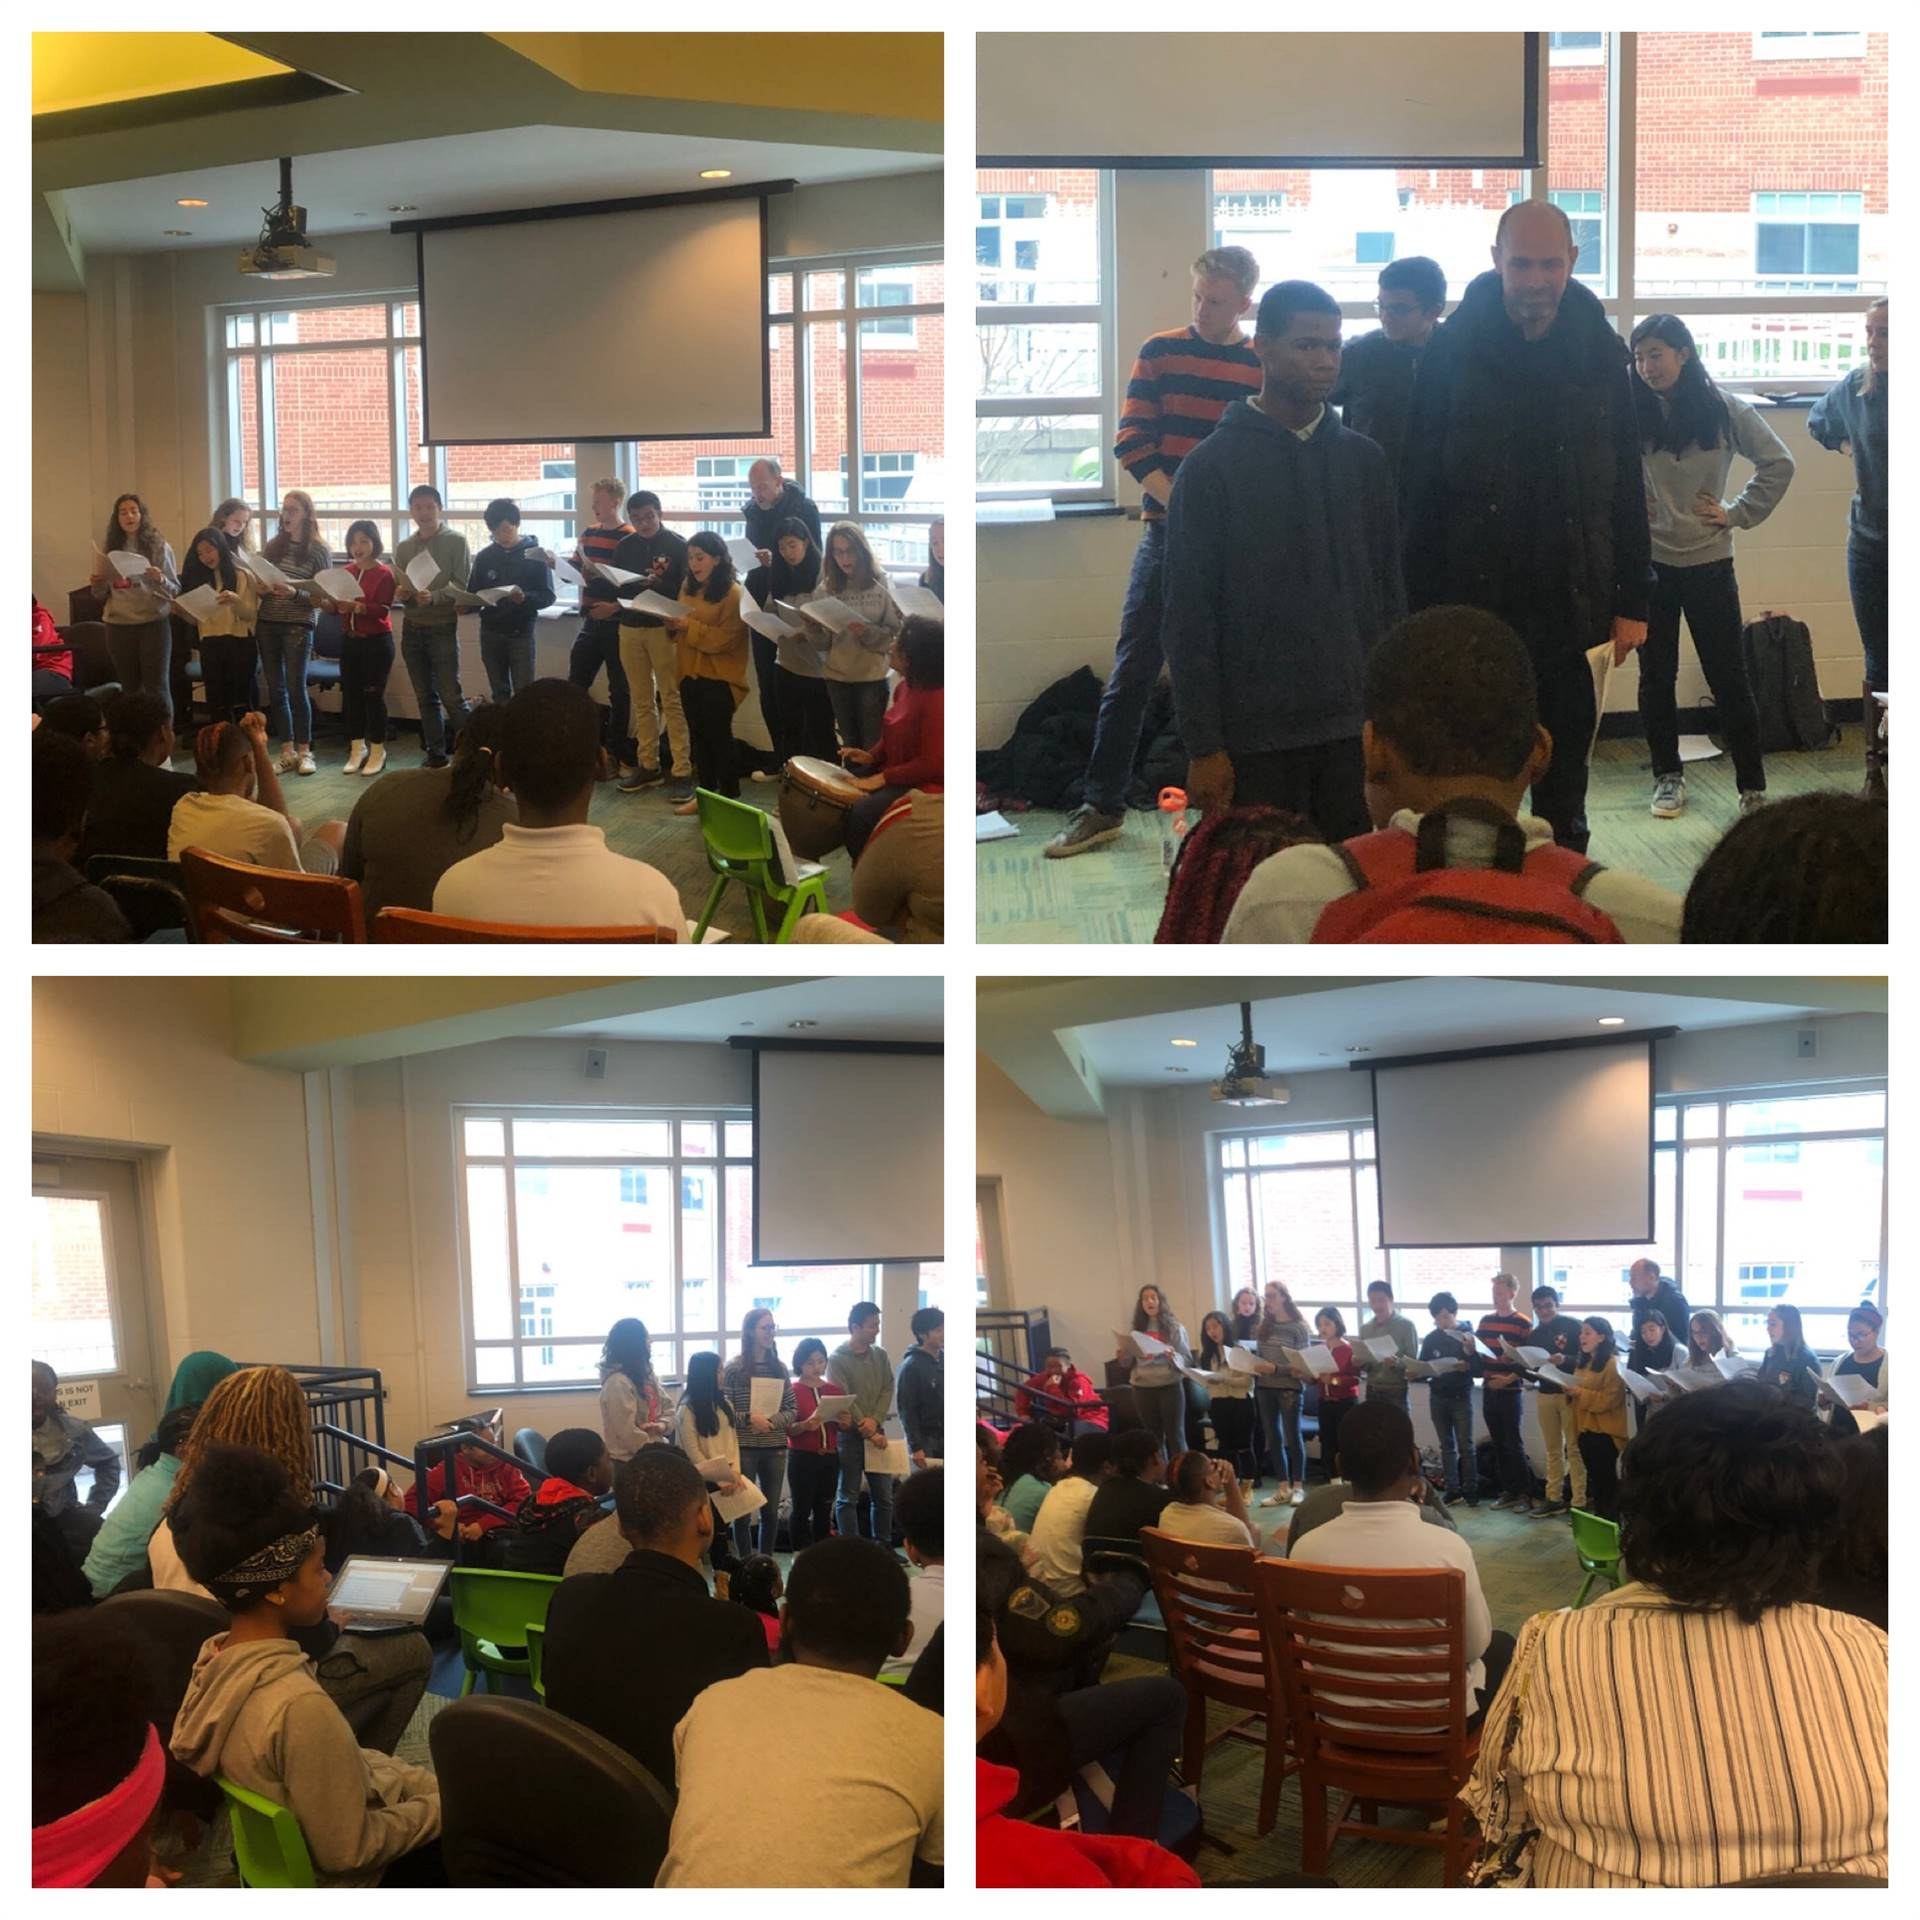 Princeton University Choir performed for students in the Media Center